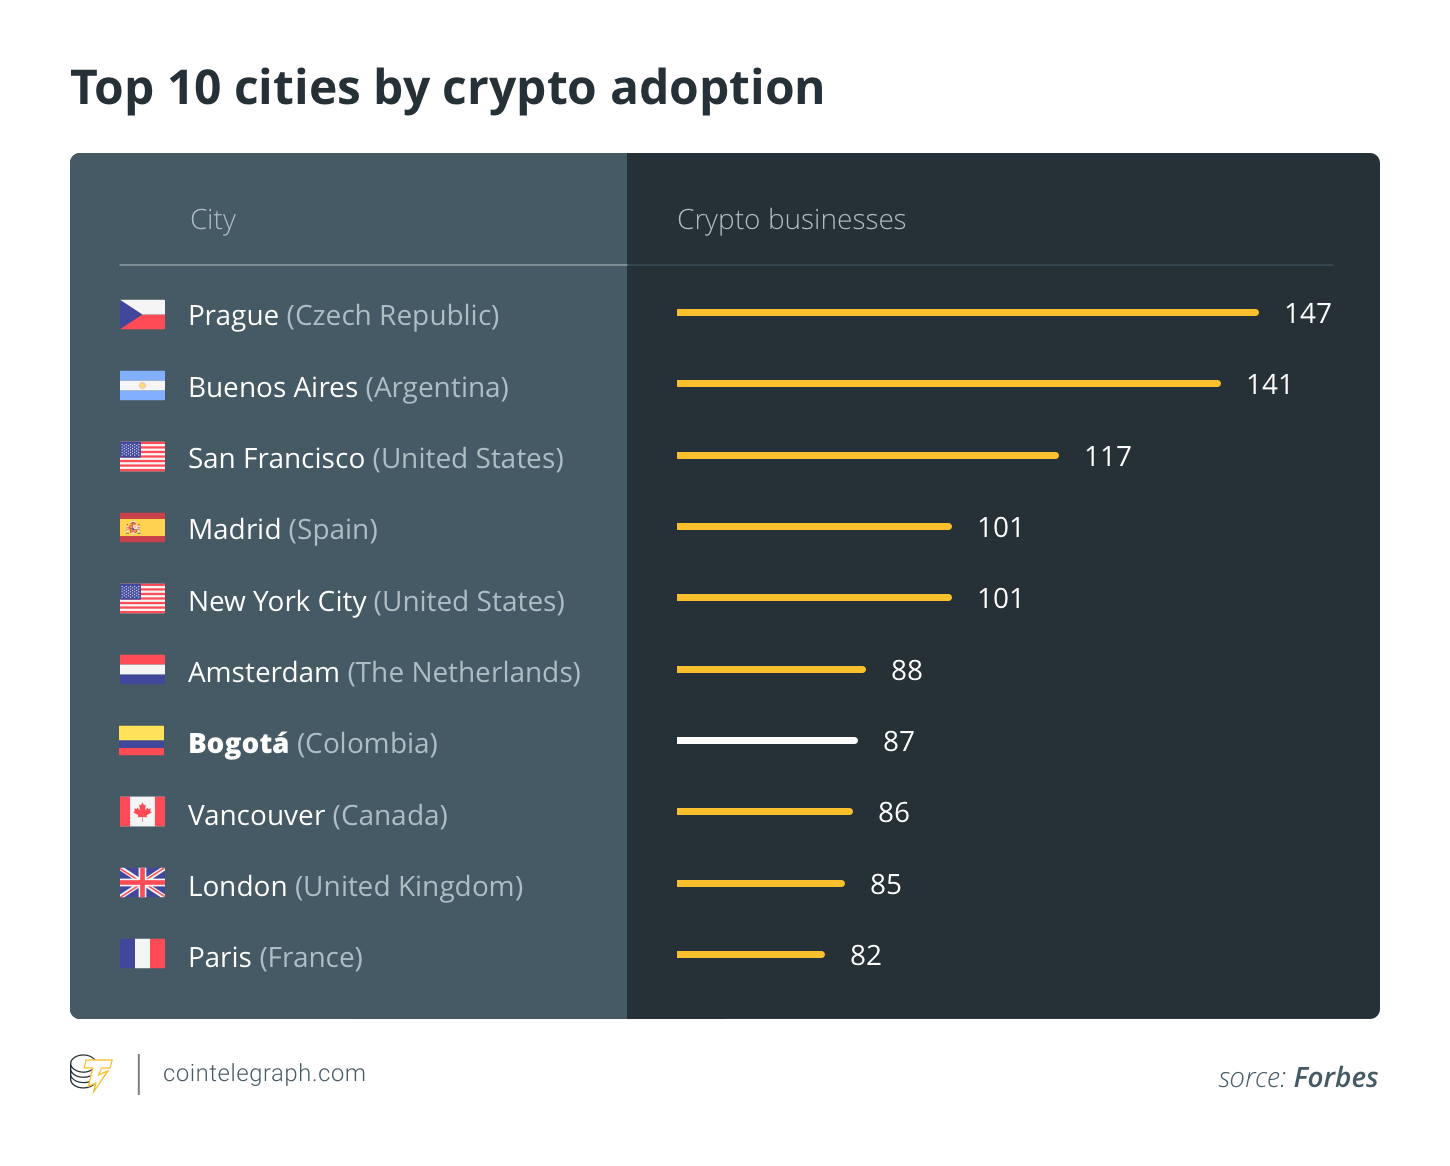 Top 10 cities by crypto adoption